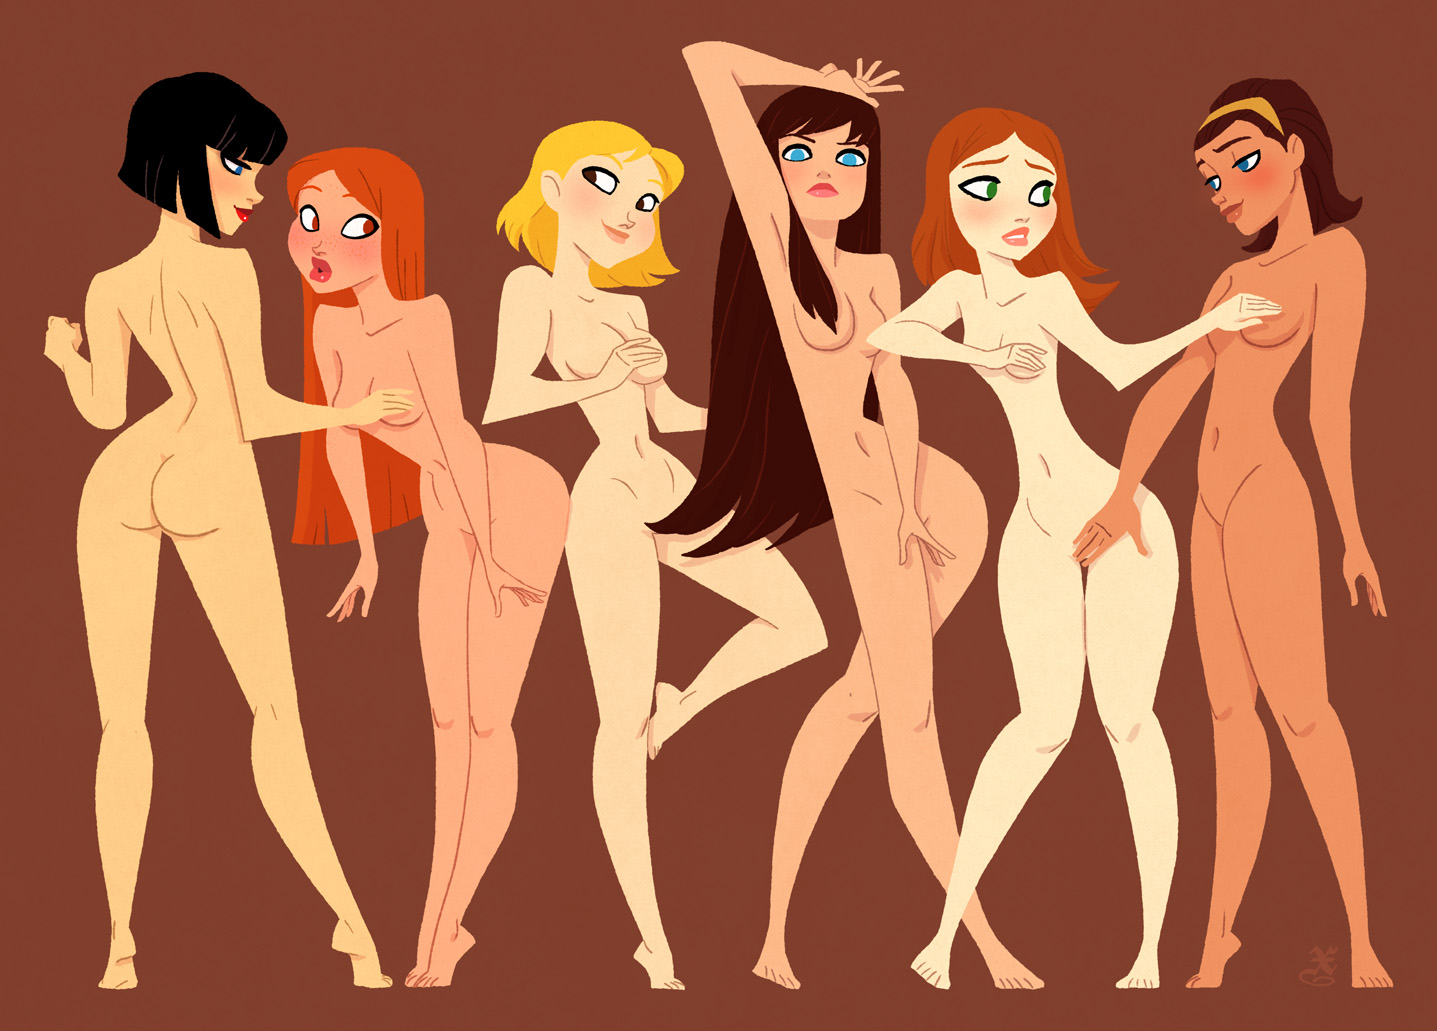 Cartoon girls naked photos erotic image